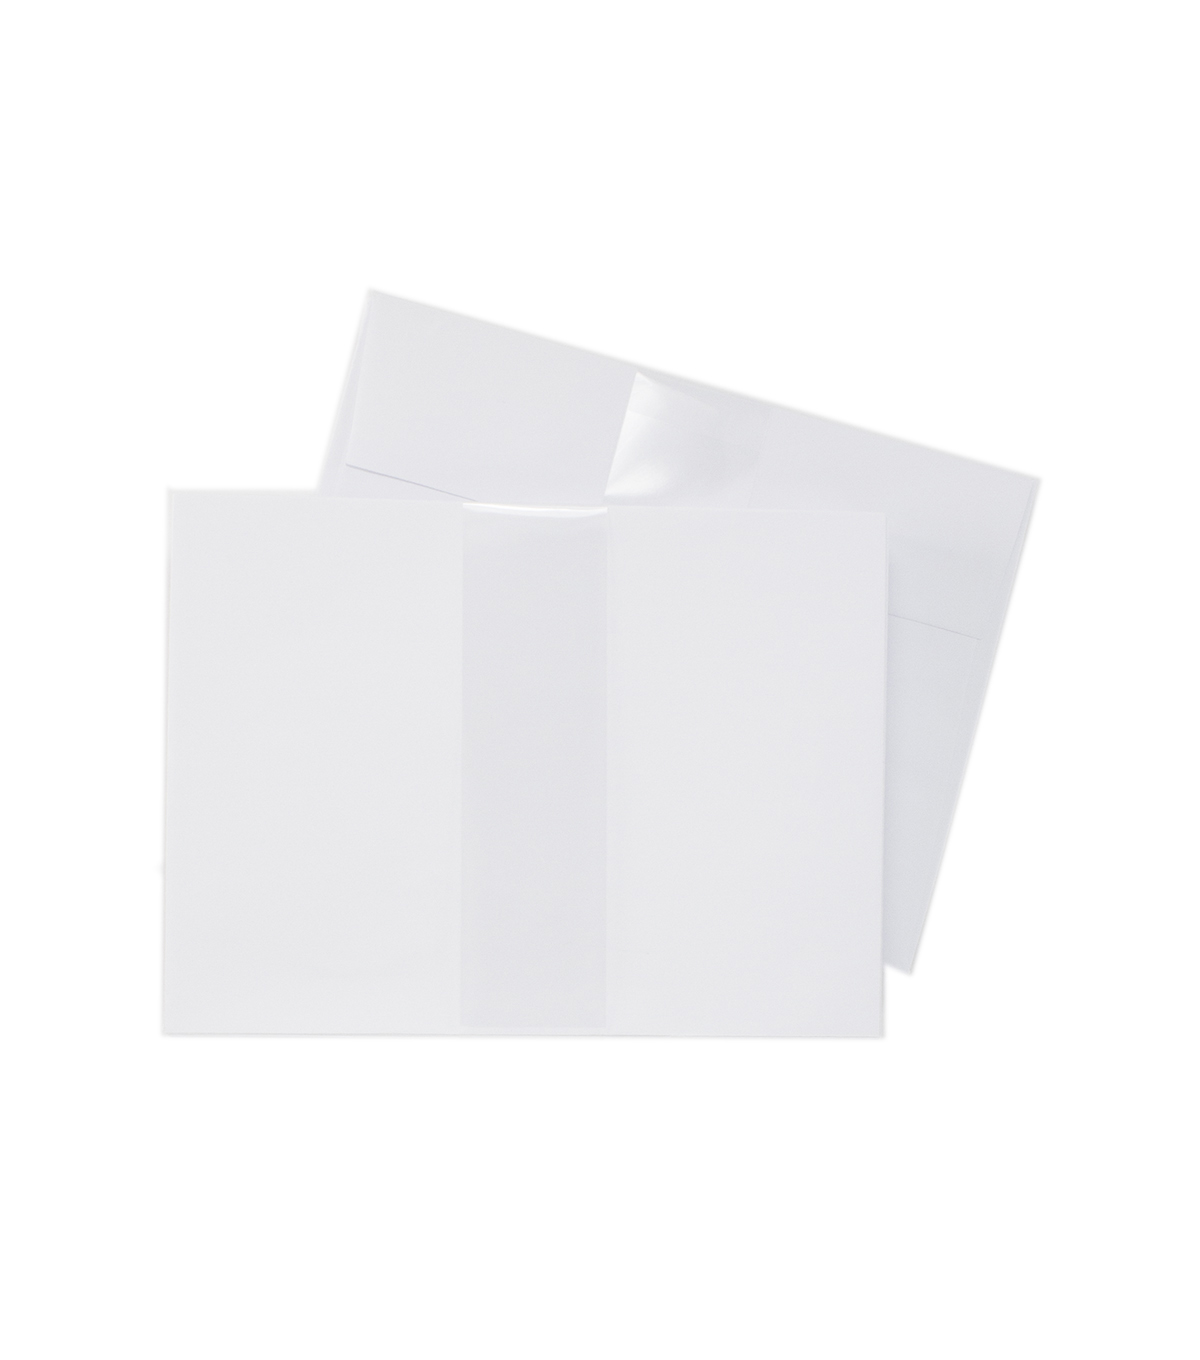 Park Lane A2 Envelopes-White